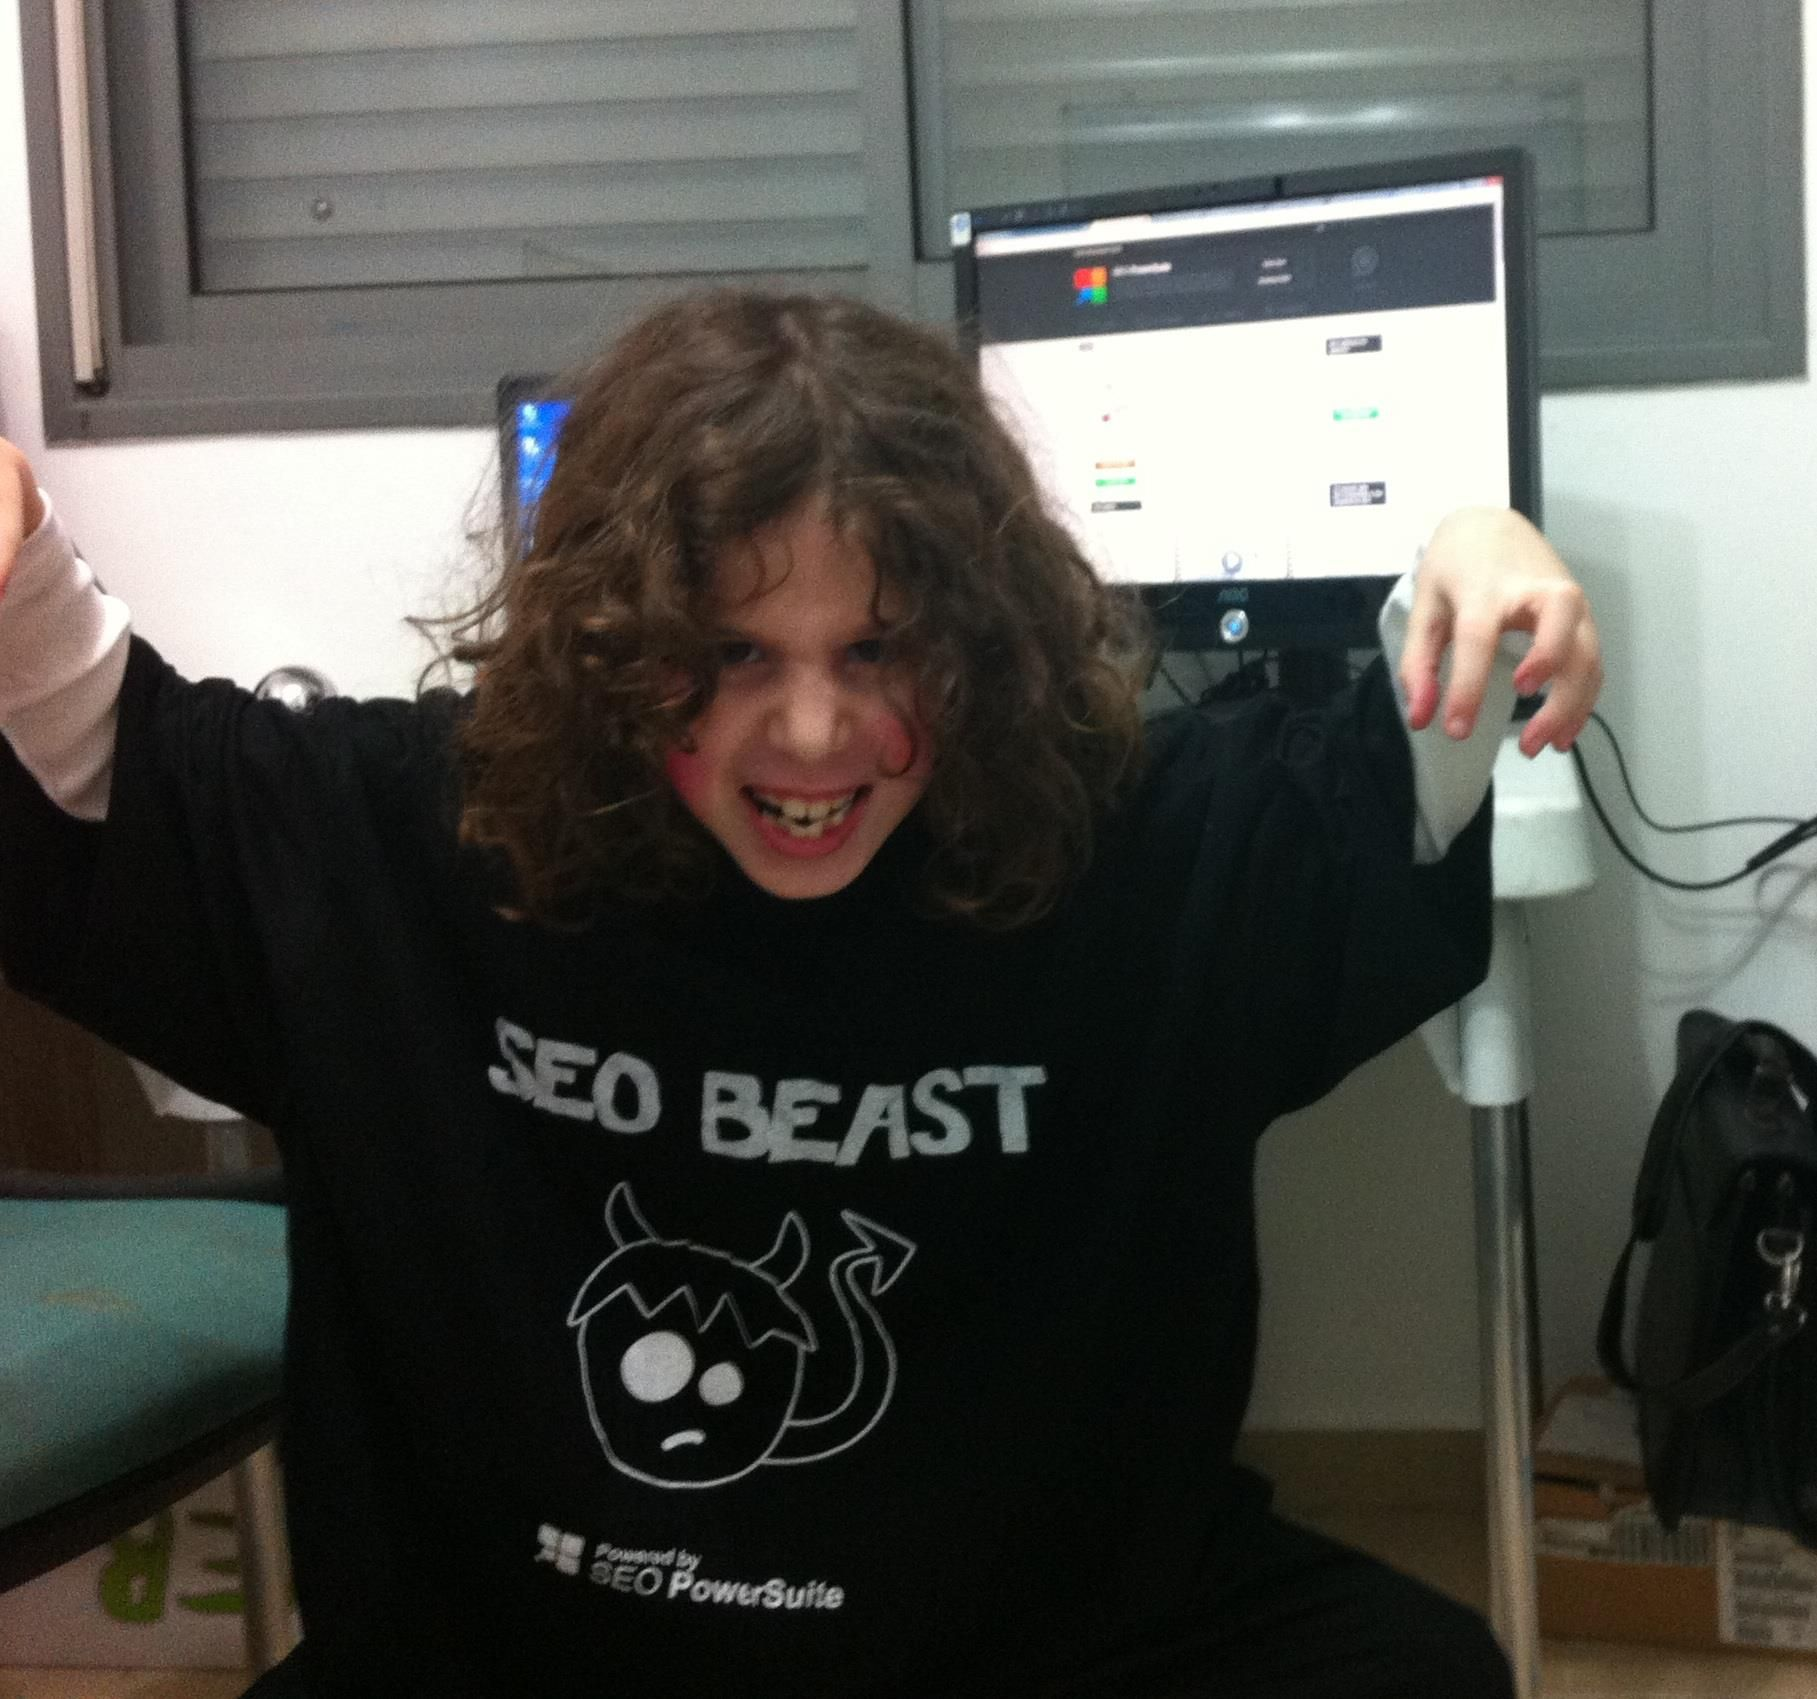 The Beast is unleashed!! Shay Berkovich's niece is trying on the t-shirt that Shay won in one of our contests.  #seo #seopowersuite #seocontest